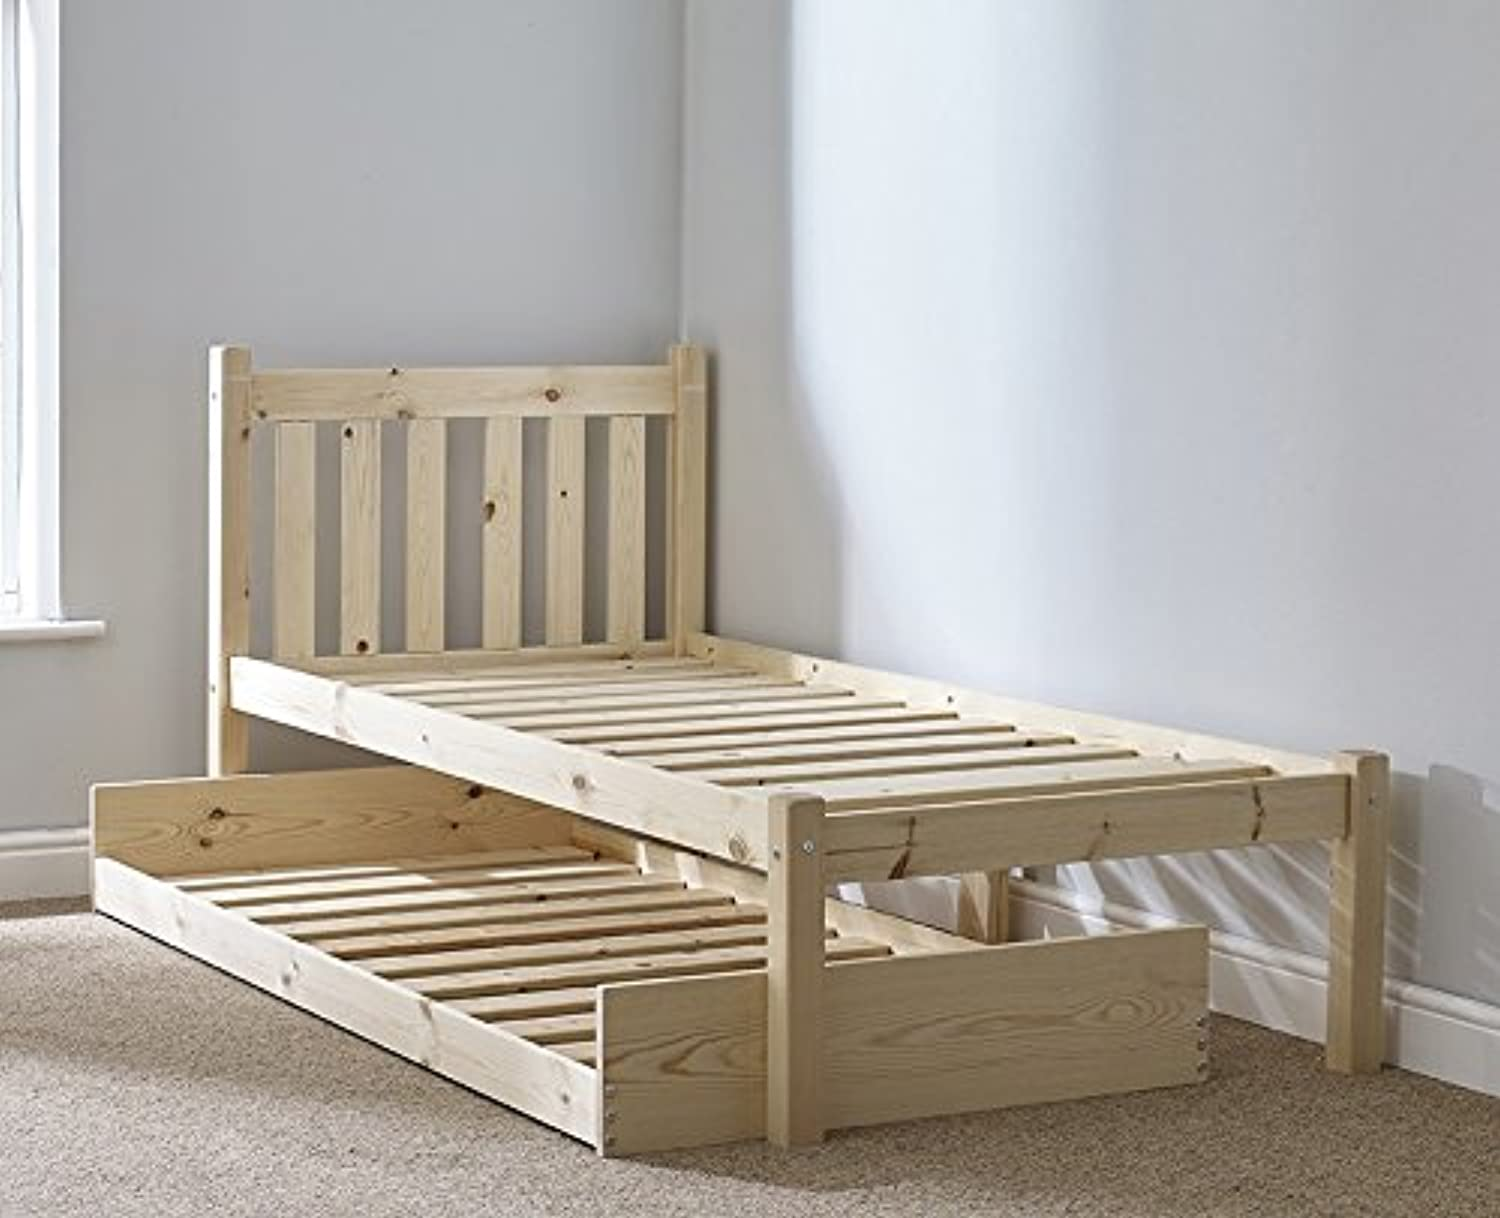 GUEST BED - 3ft single pine guest bed Frame - with pull out trundle guest bed